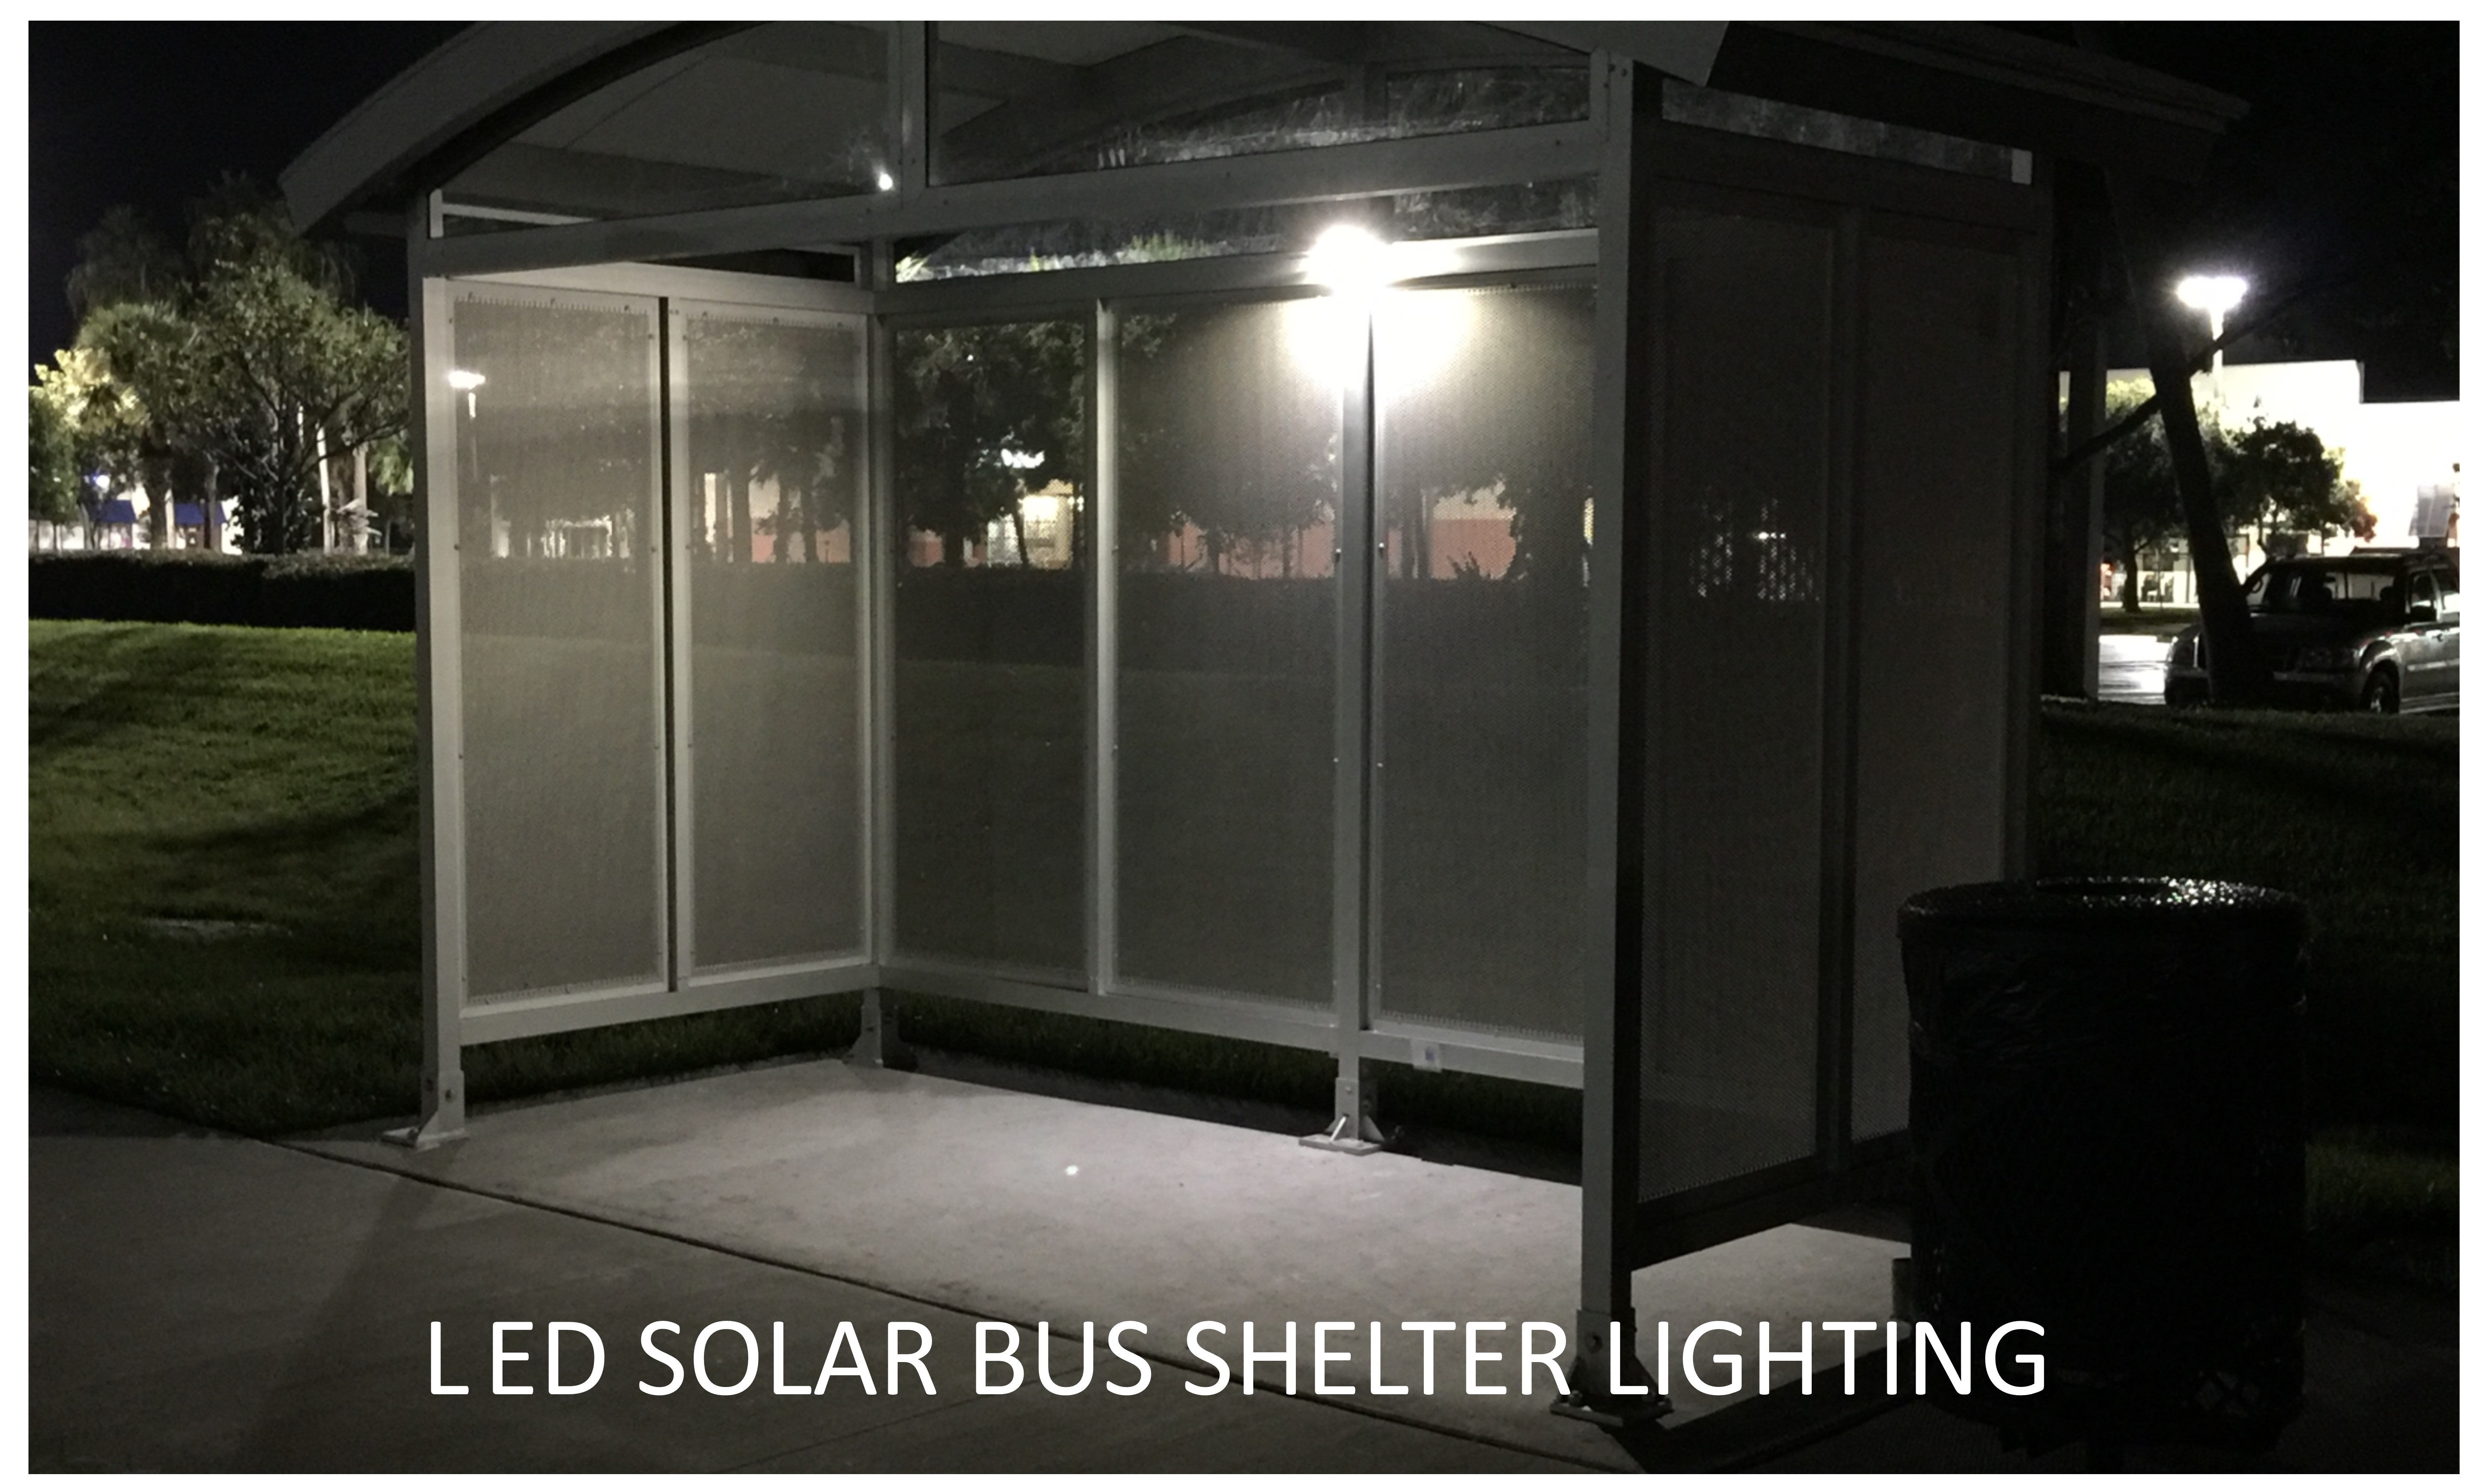 This is a photo of a bus shelter illuminated by a solar powered LED solar bus shelter light